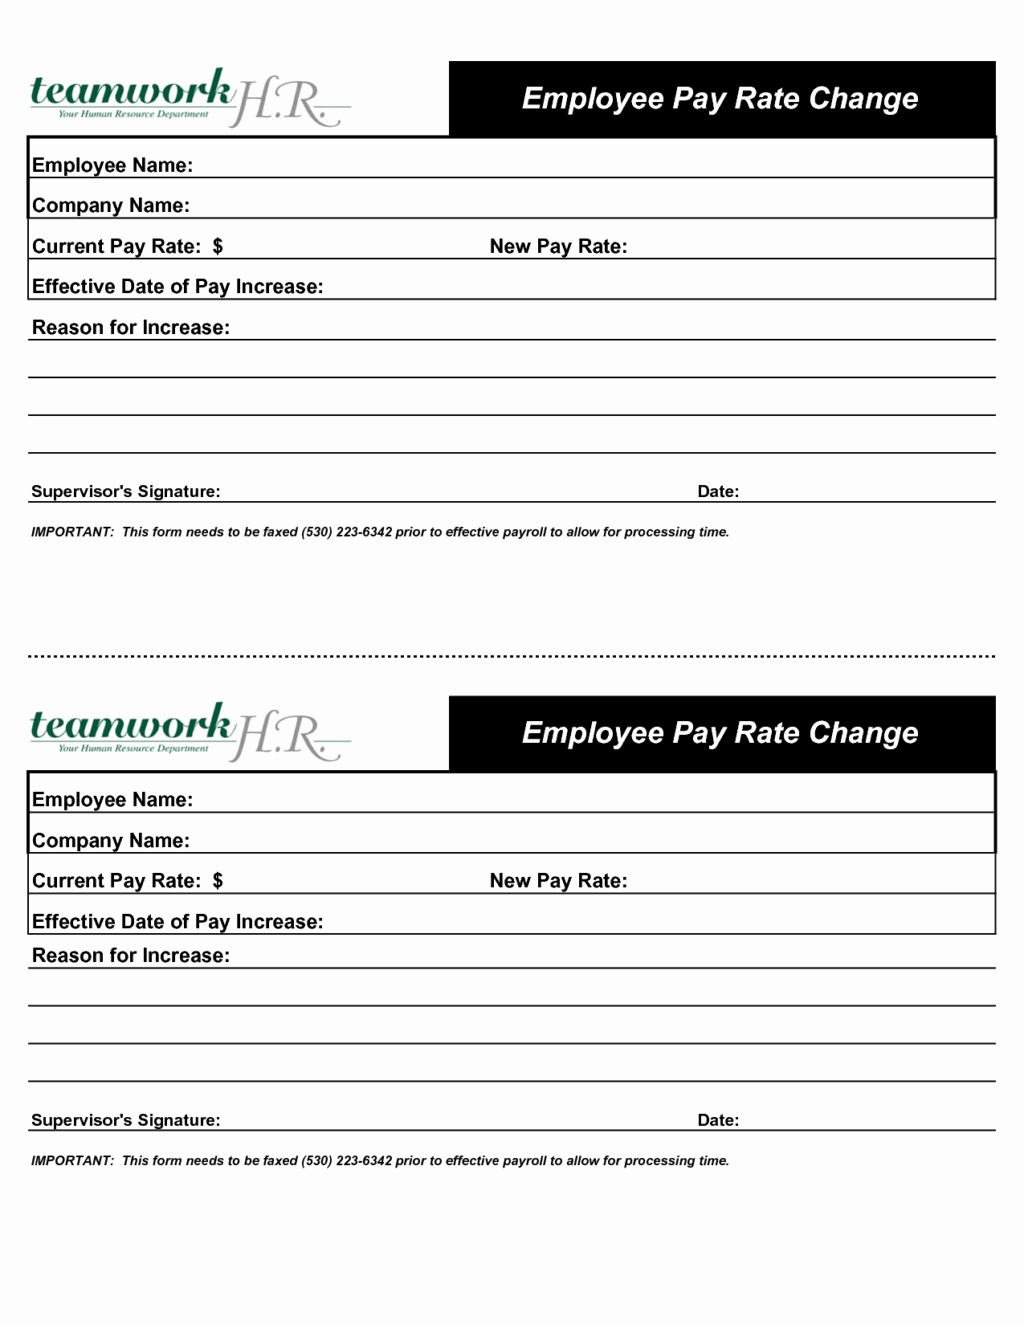 Wage Increase form New Inspirational Employee Pay Rate Change Increase form